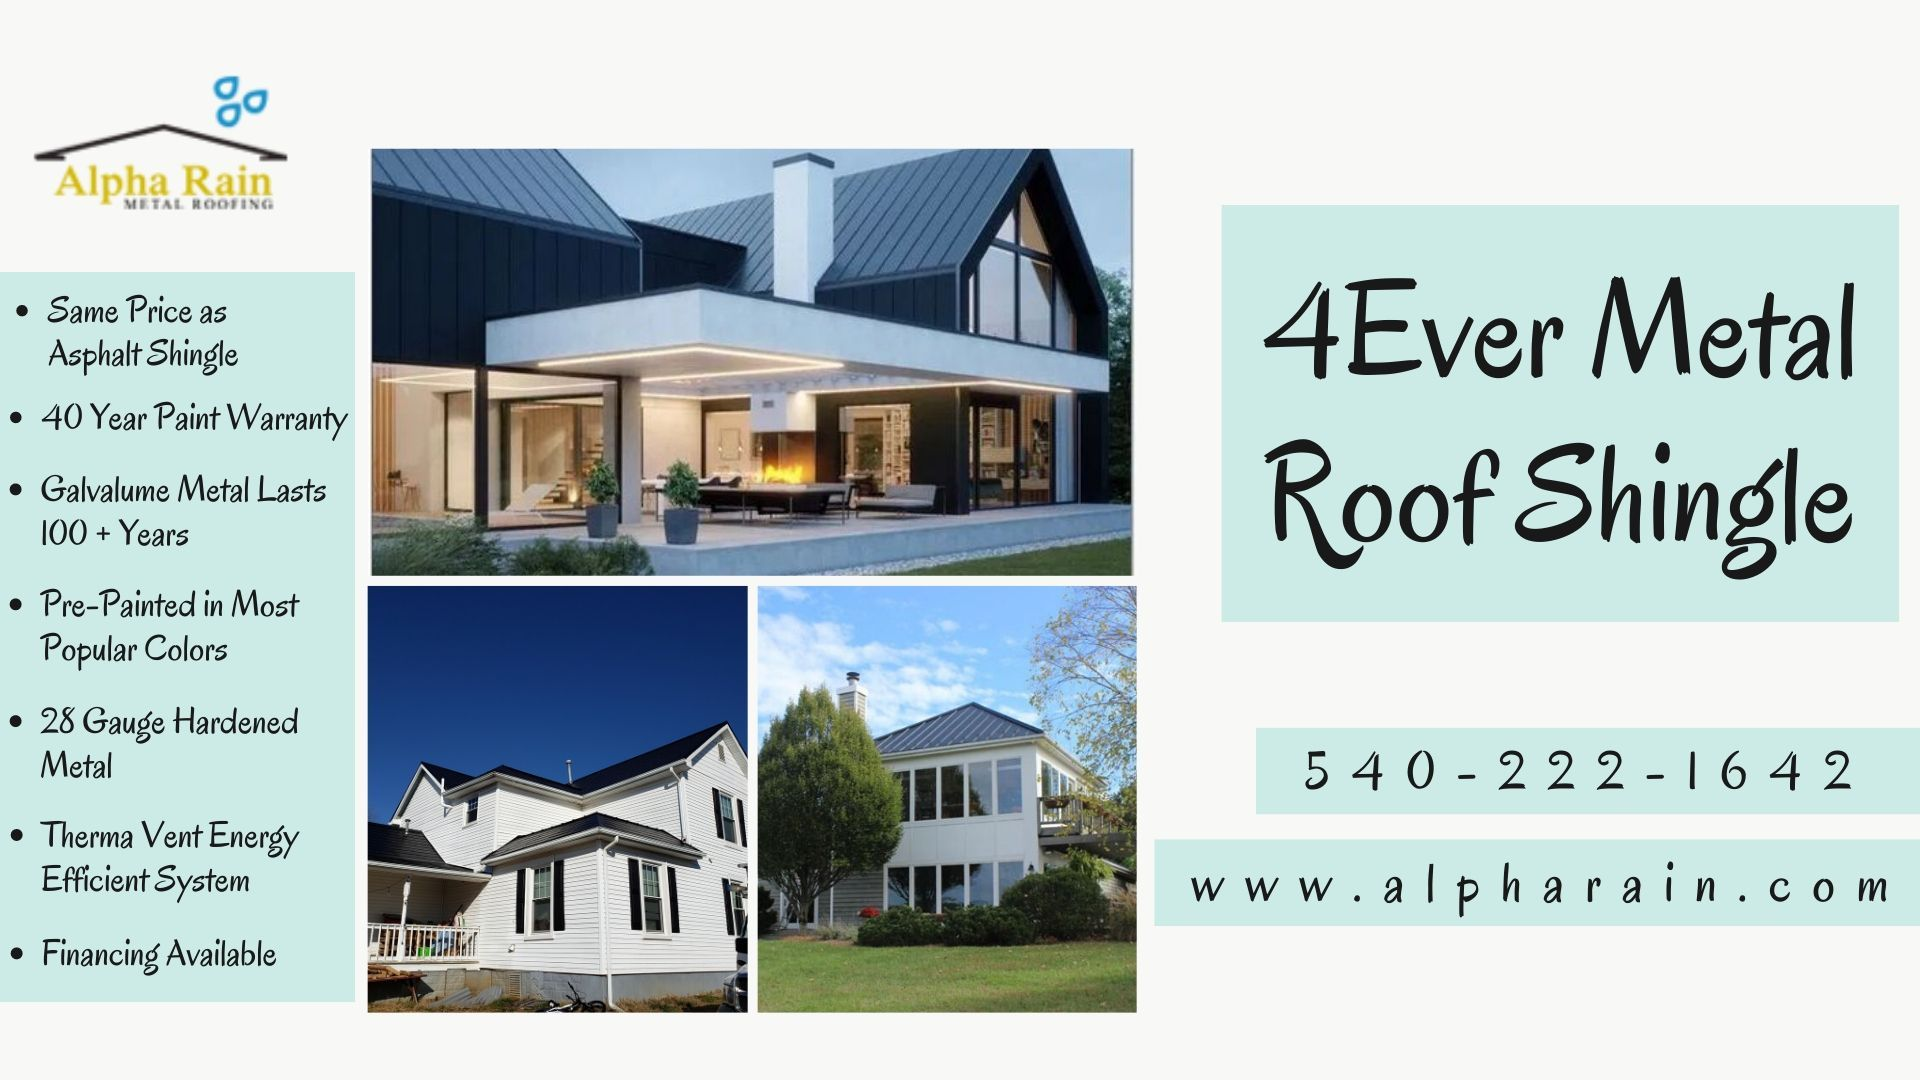 Features Of Metal Roof Shingles Offered By Alpha Rain In 2020 Shingling Metal Shingle Roof Roof Shingles